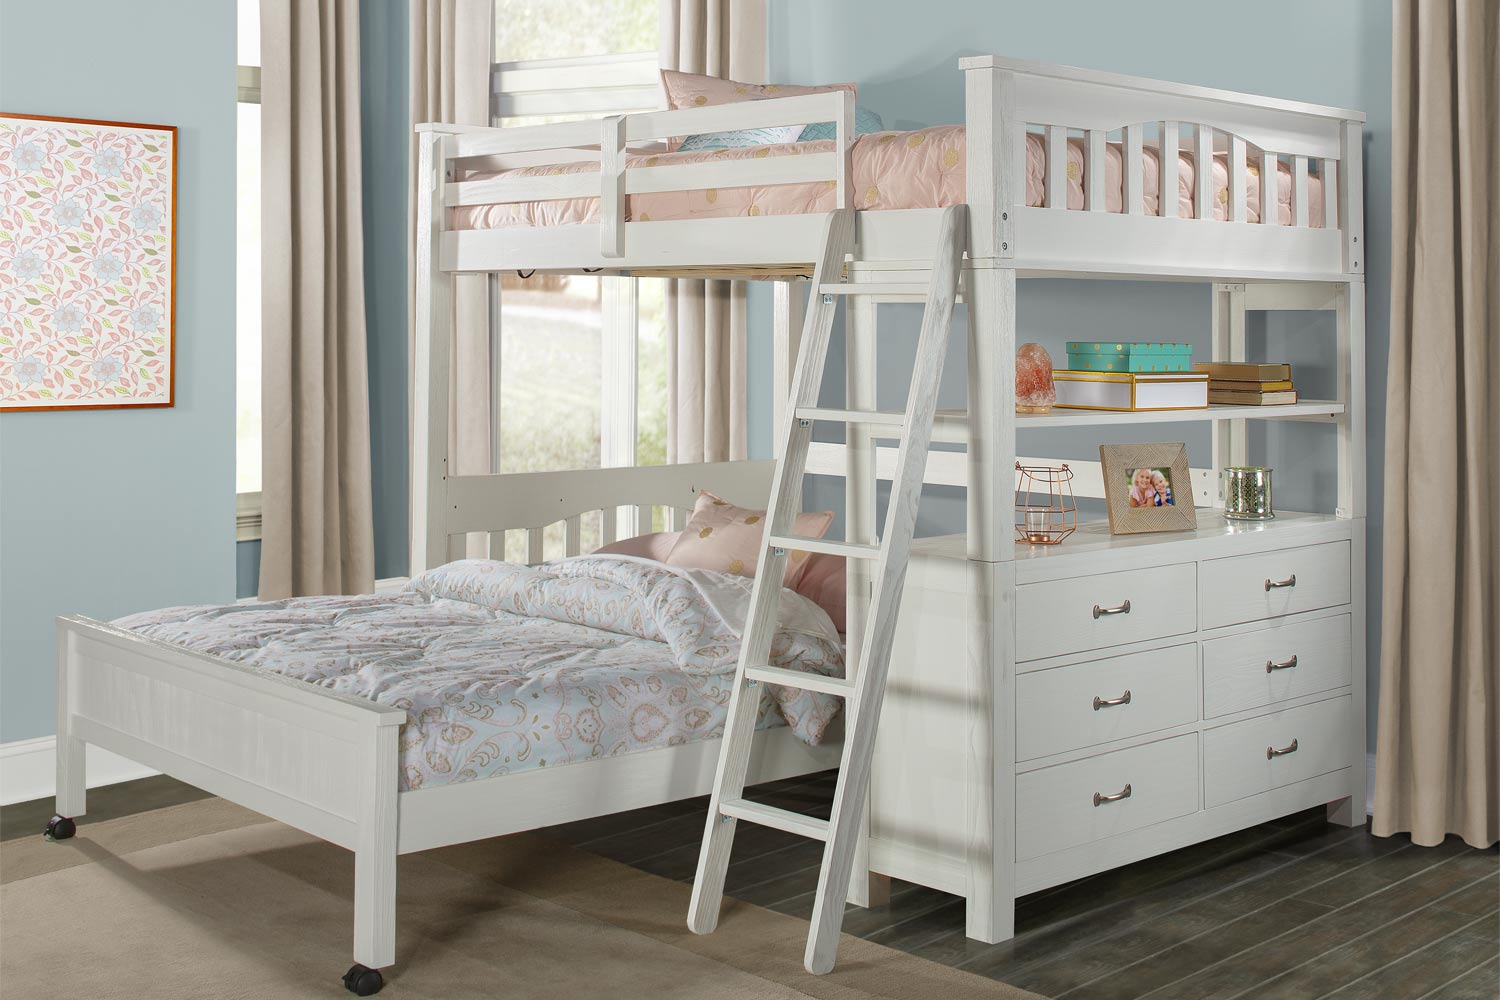 NE Kids Highlands Loft Bed with Full Lower Bed - White